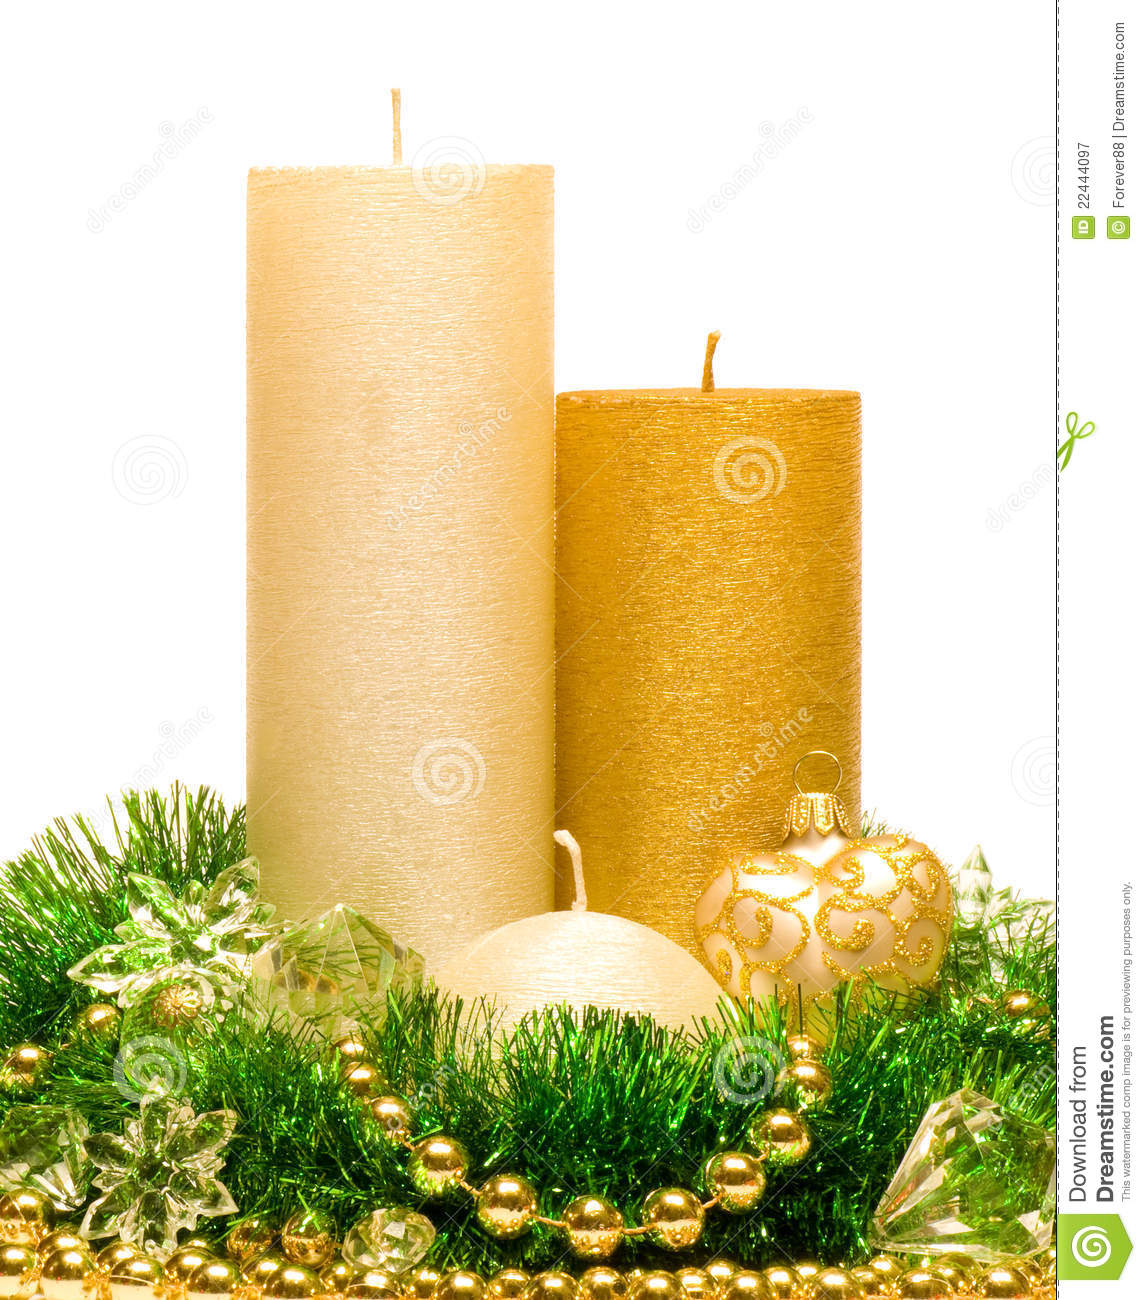 Christmas decoration candle royalty free stock photography image 22444097 for 7 candle christmas decoration